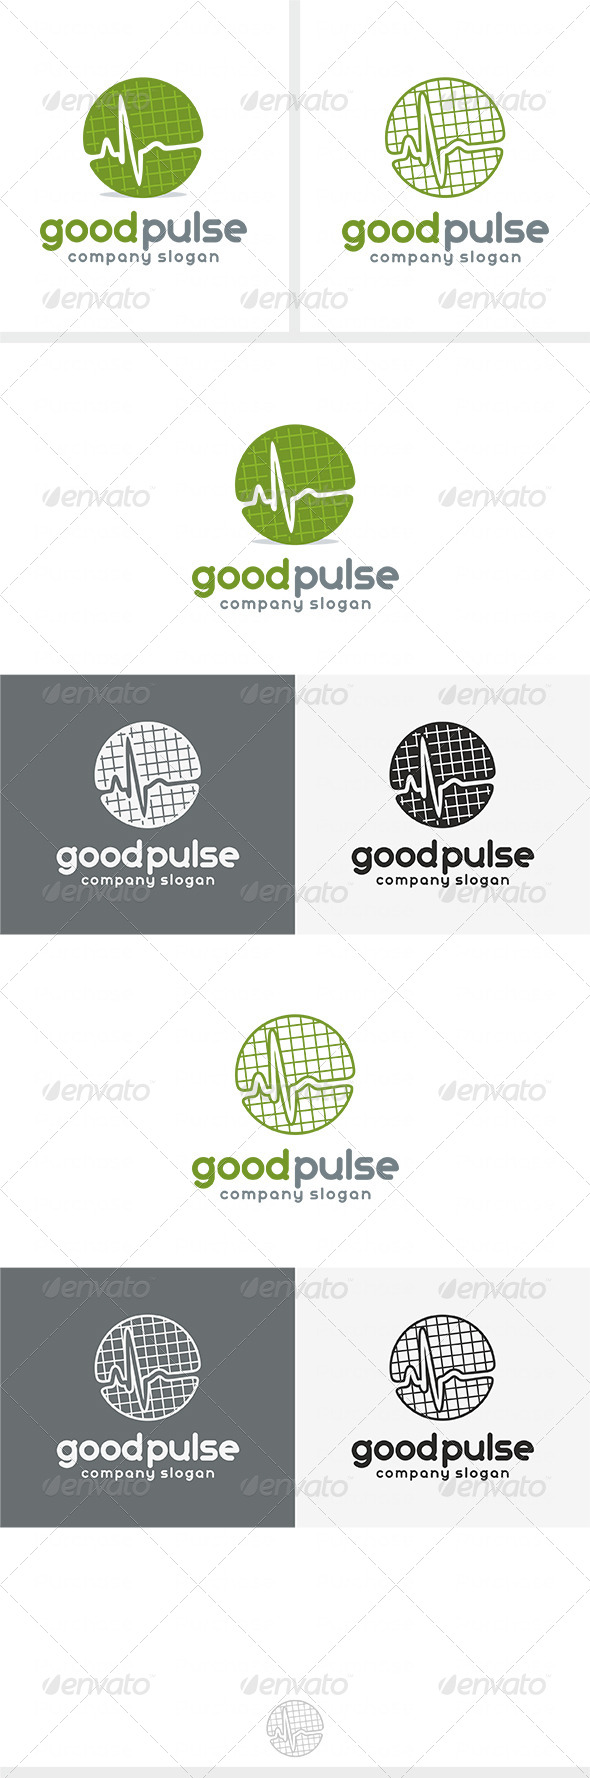 Good Pulse Logo - Vector Abstract